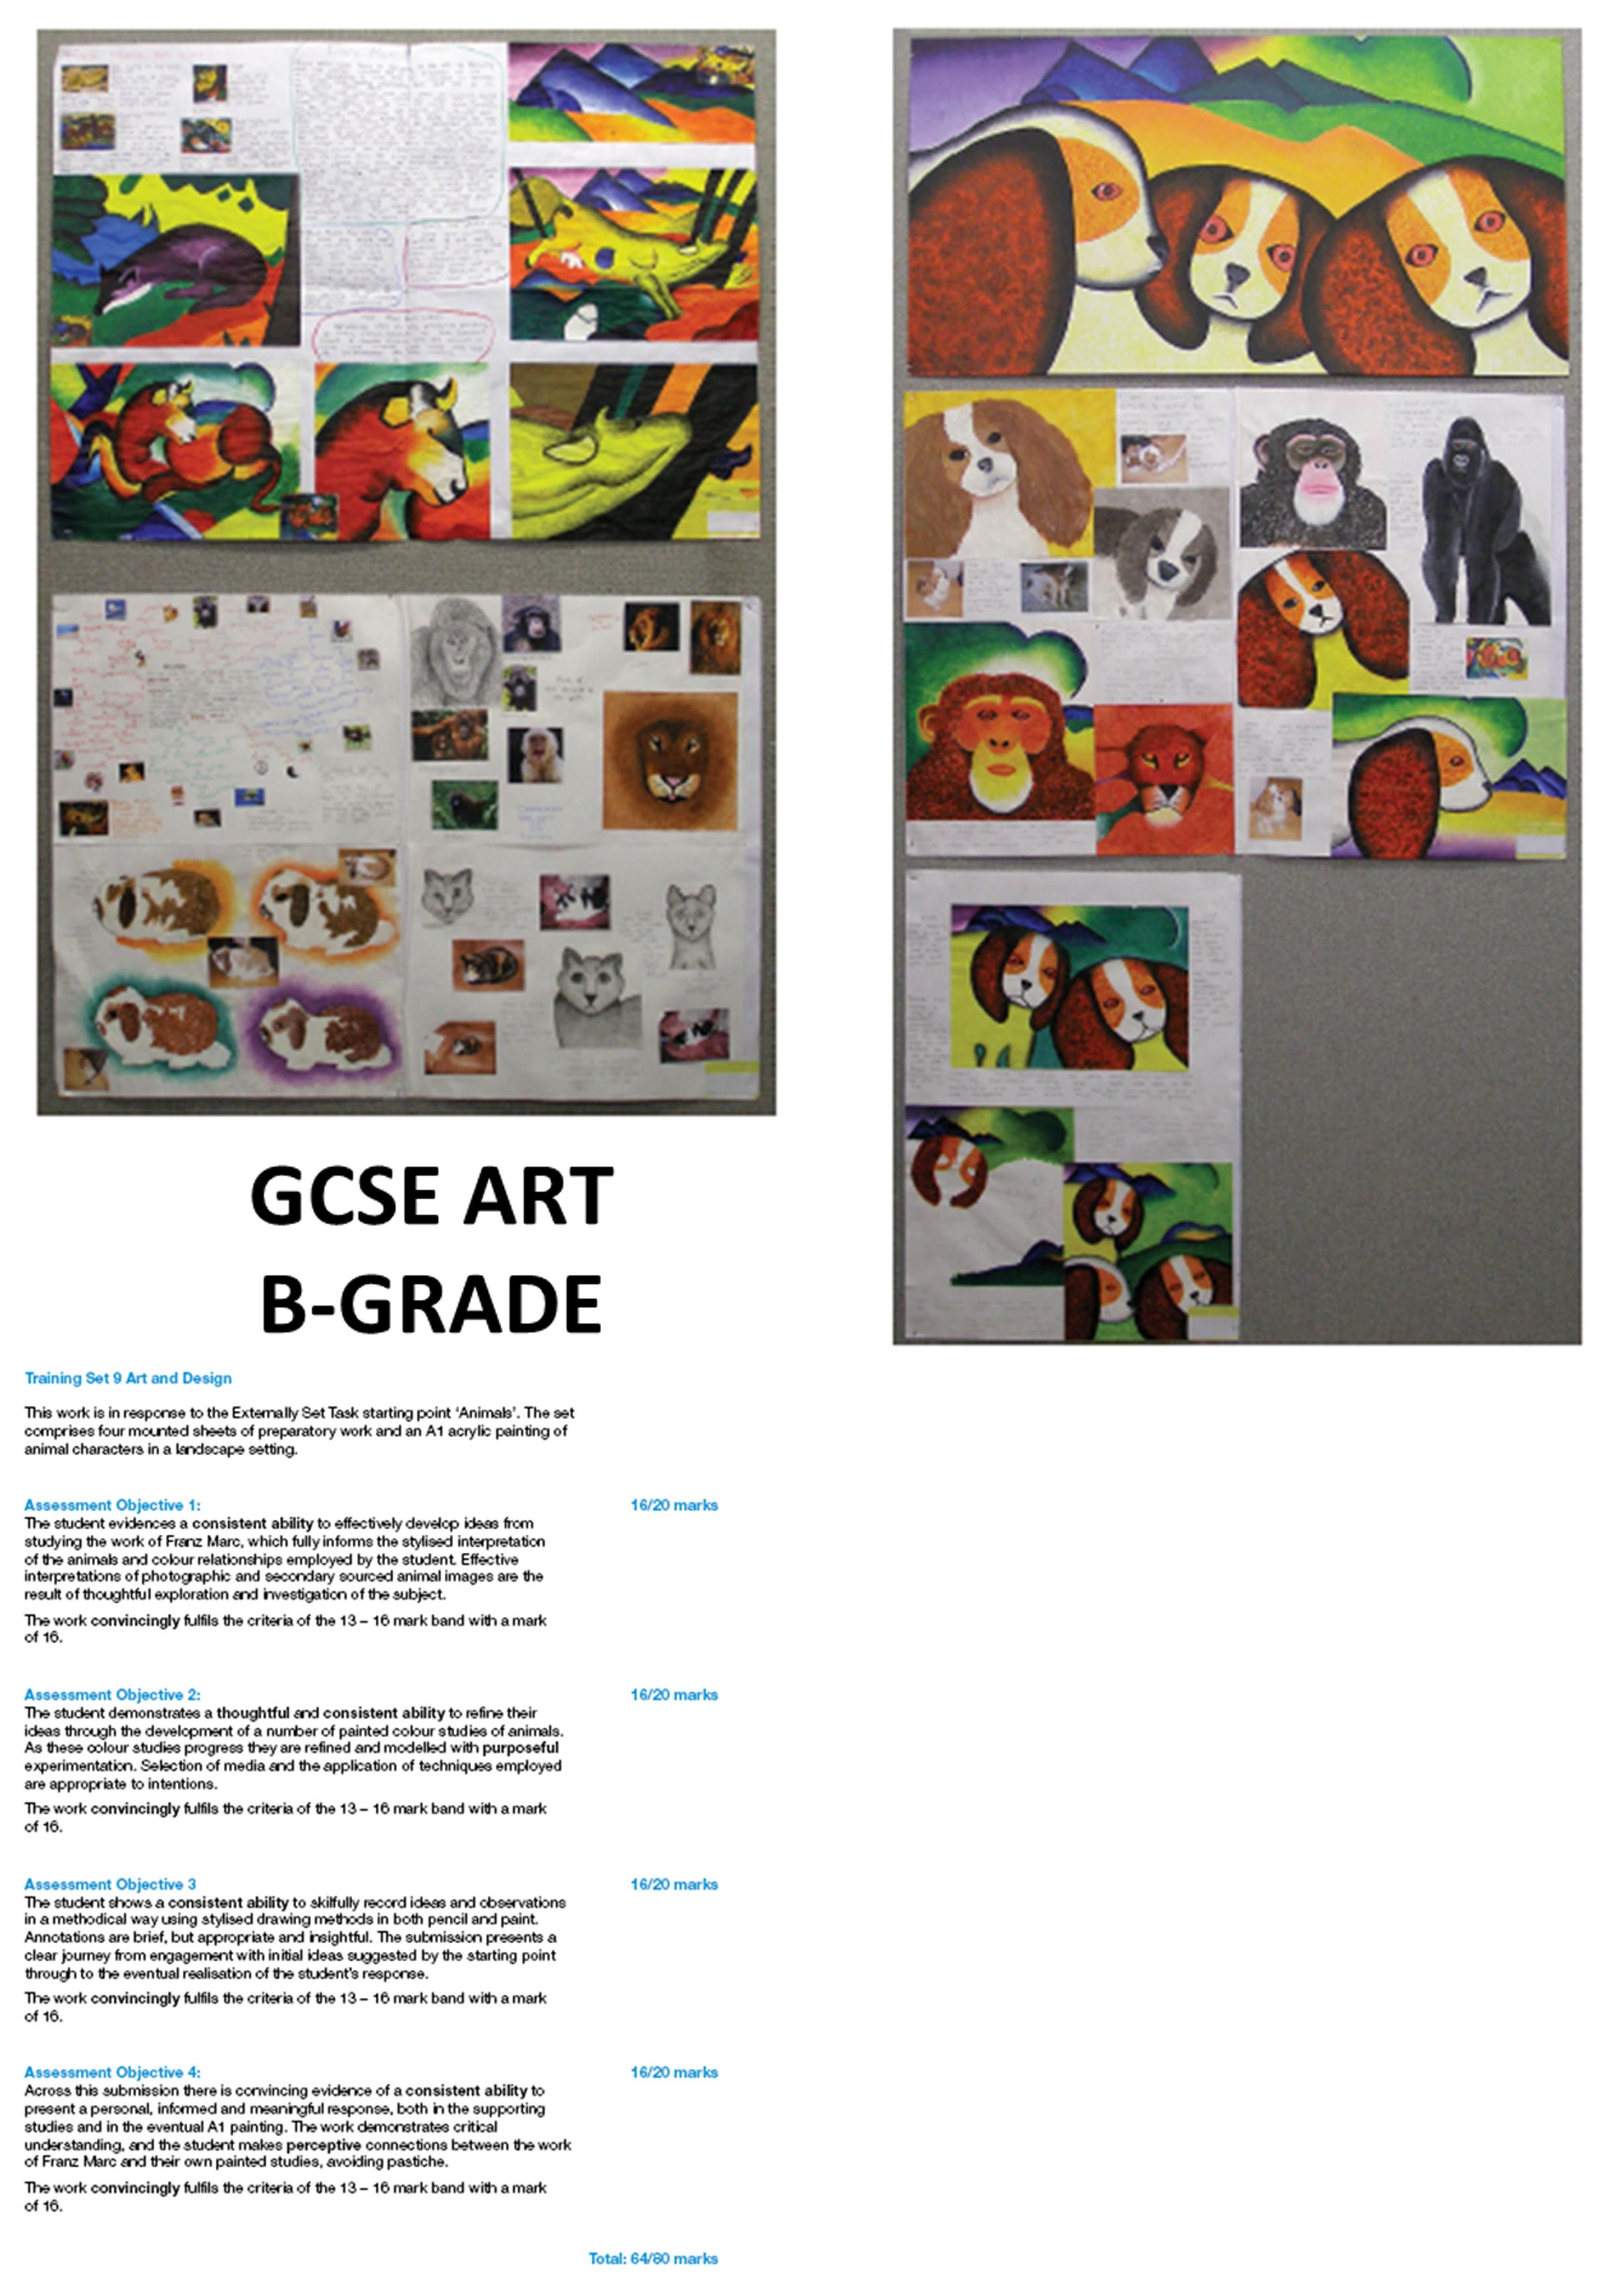 GCSE art and design